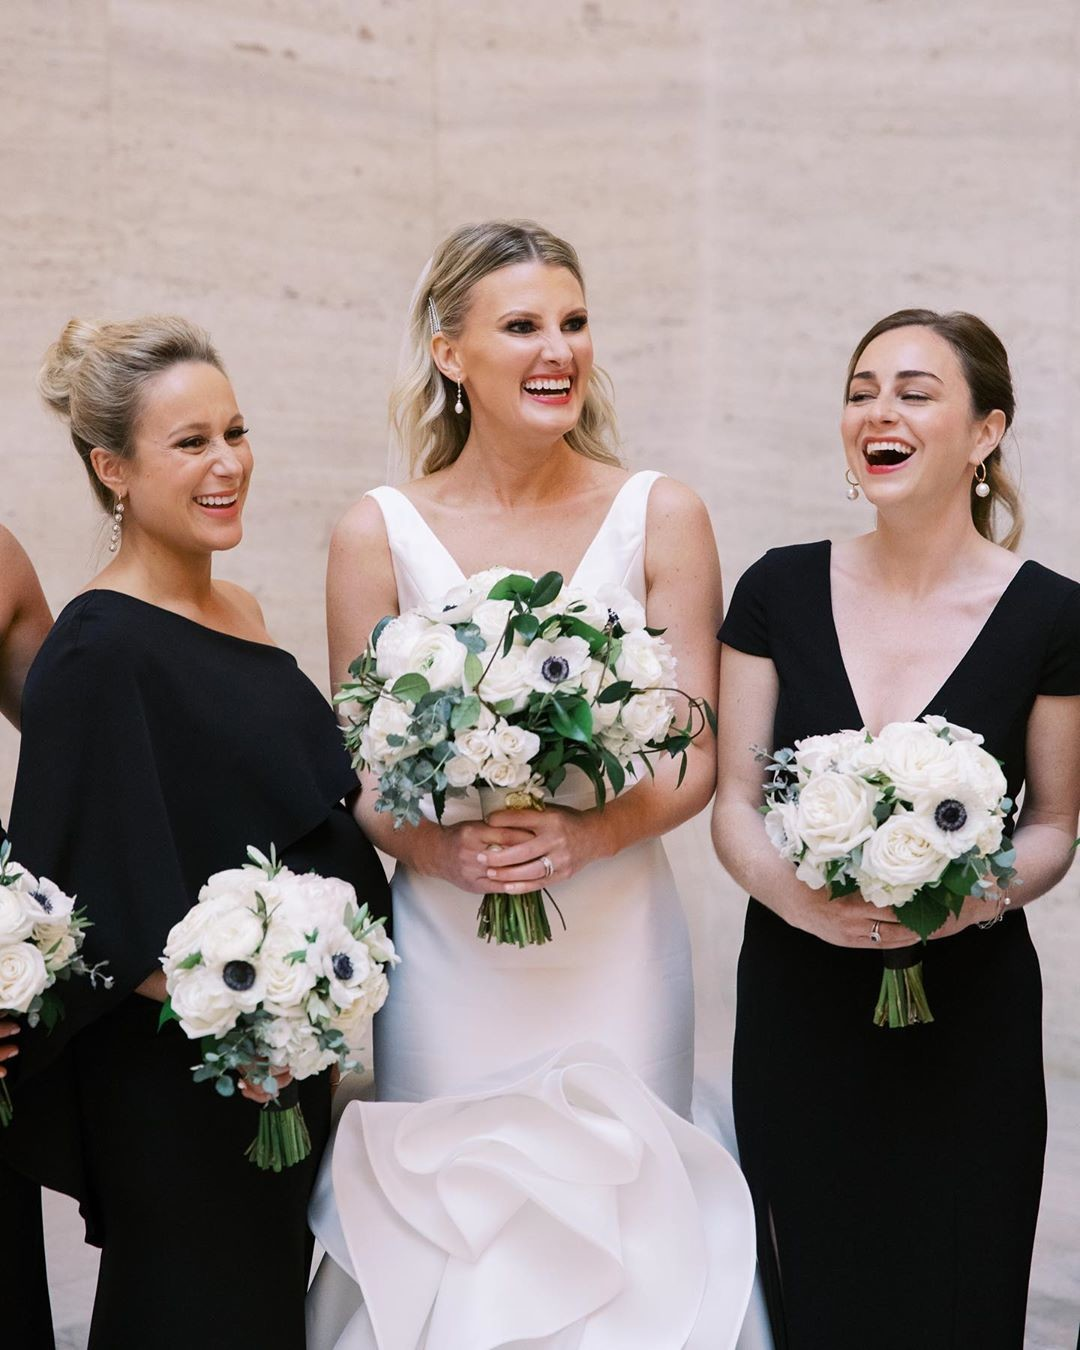 Monday morning mood inspired by this sweet, impeccably styled bride and her marvelous 'maids. (and those bouquets! ✨😍) Photo